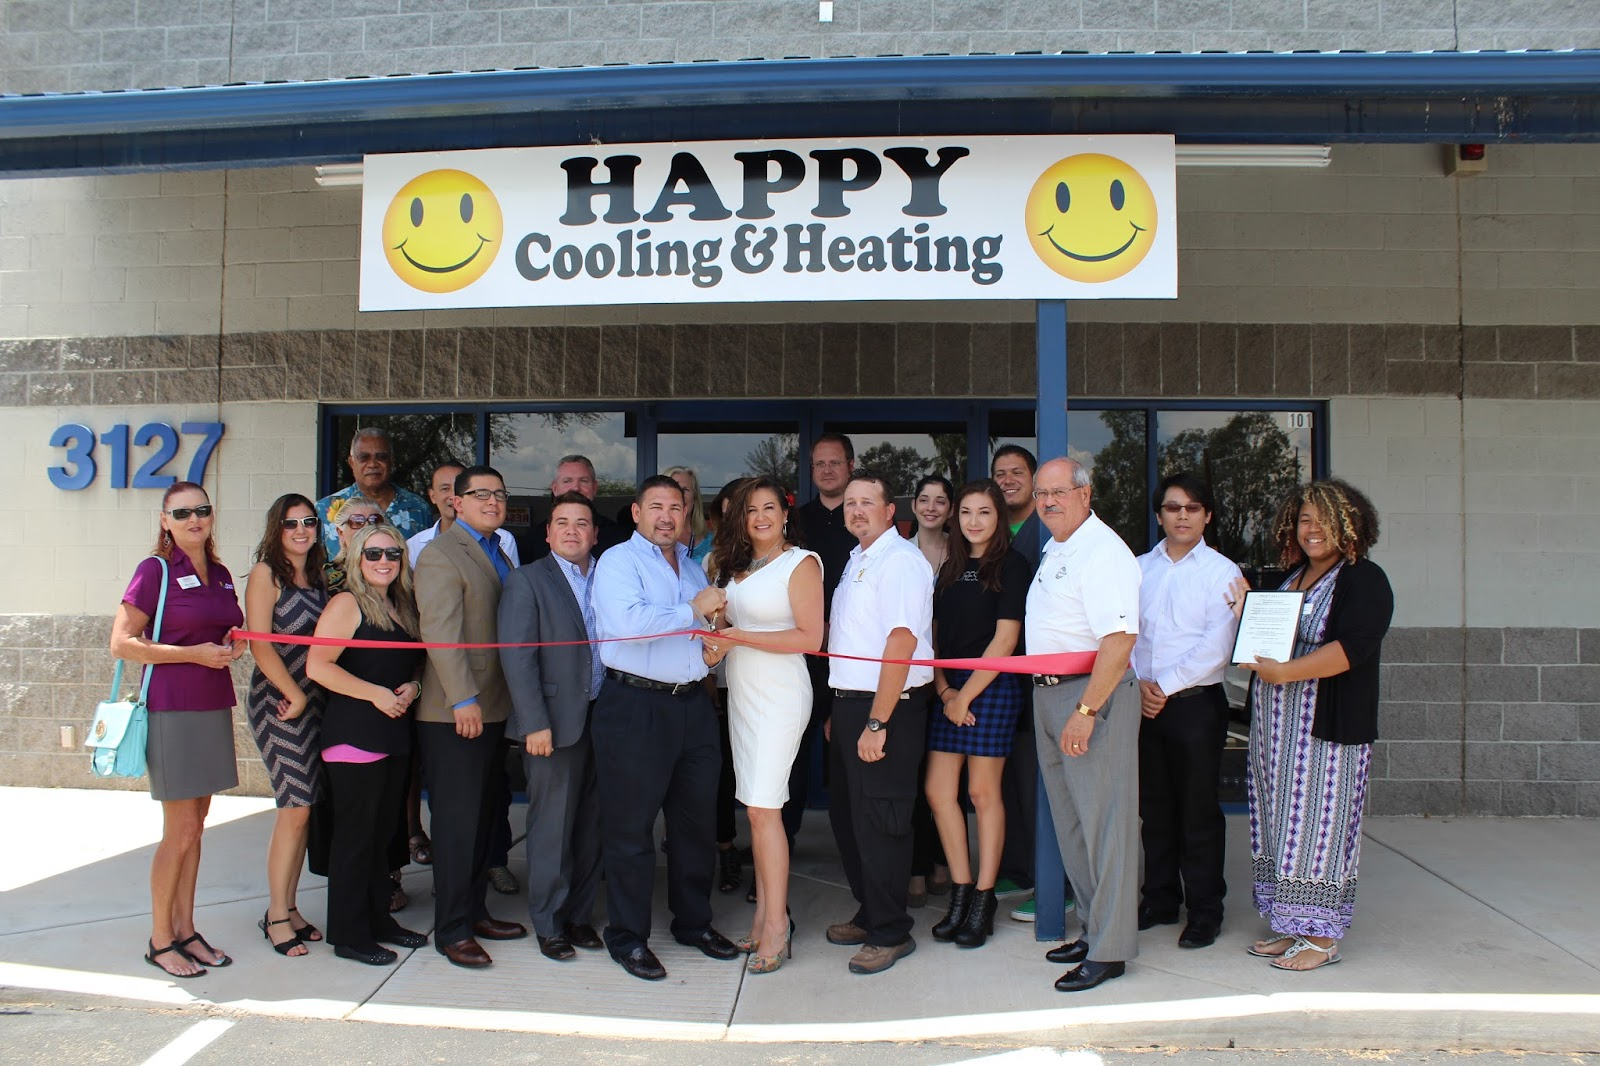 At Happy Cooling & Heating, all of our HVAC technicians are skilled, knowledgeable, reliable, and courteous. We're happy to answer your questions and give you the expert advice that you need to make the right decisions for your home. Offering free second opinions. Visit our website for additional savings at www.happycoolingandheating.com  Happy Cooling and Heating, LLC 3127 N. Stone Avenue #101, 85705 (520) 257-4450